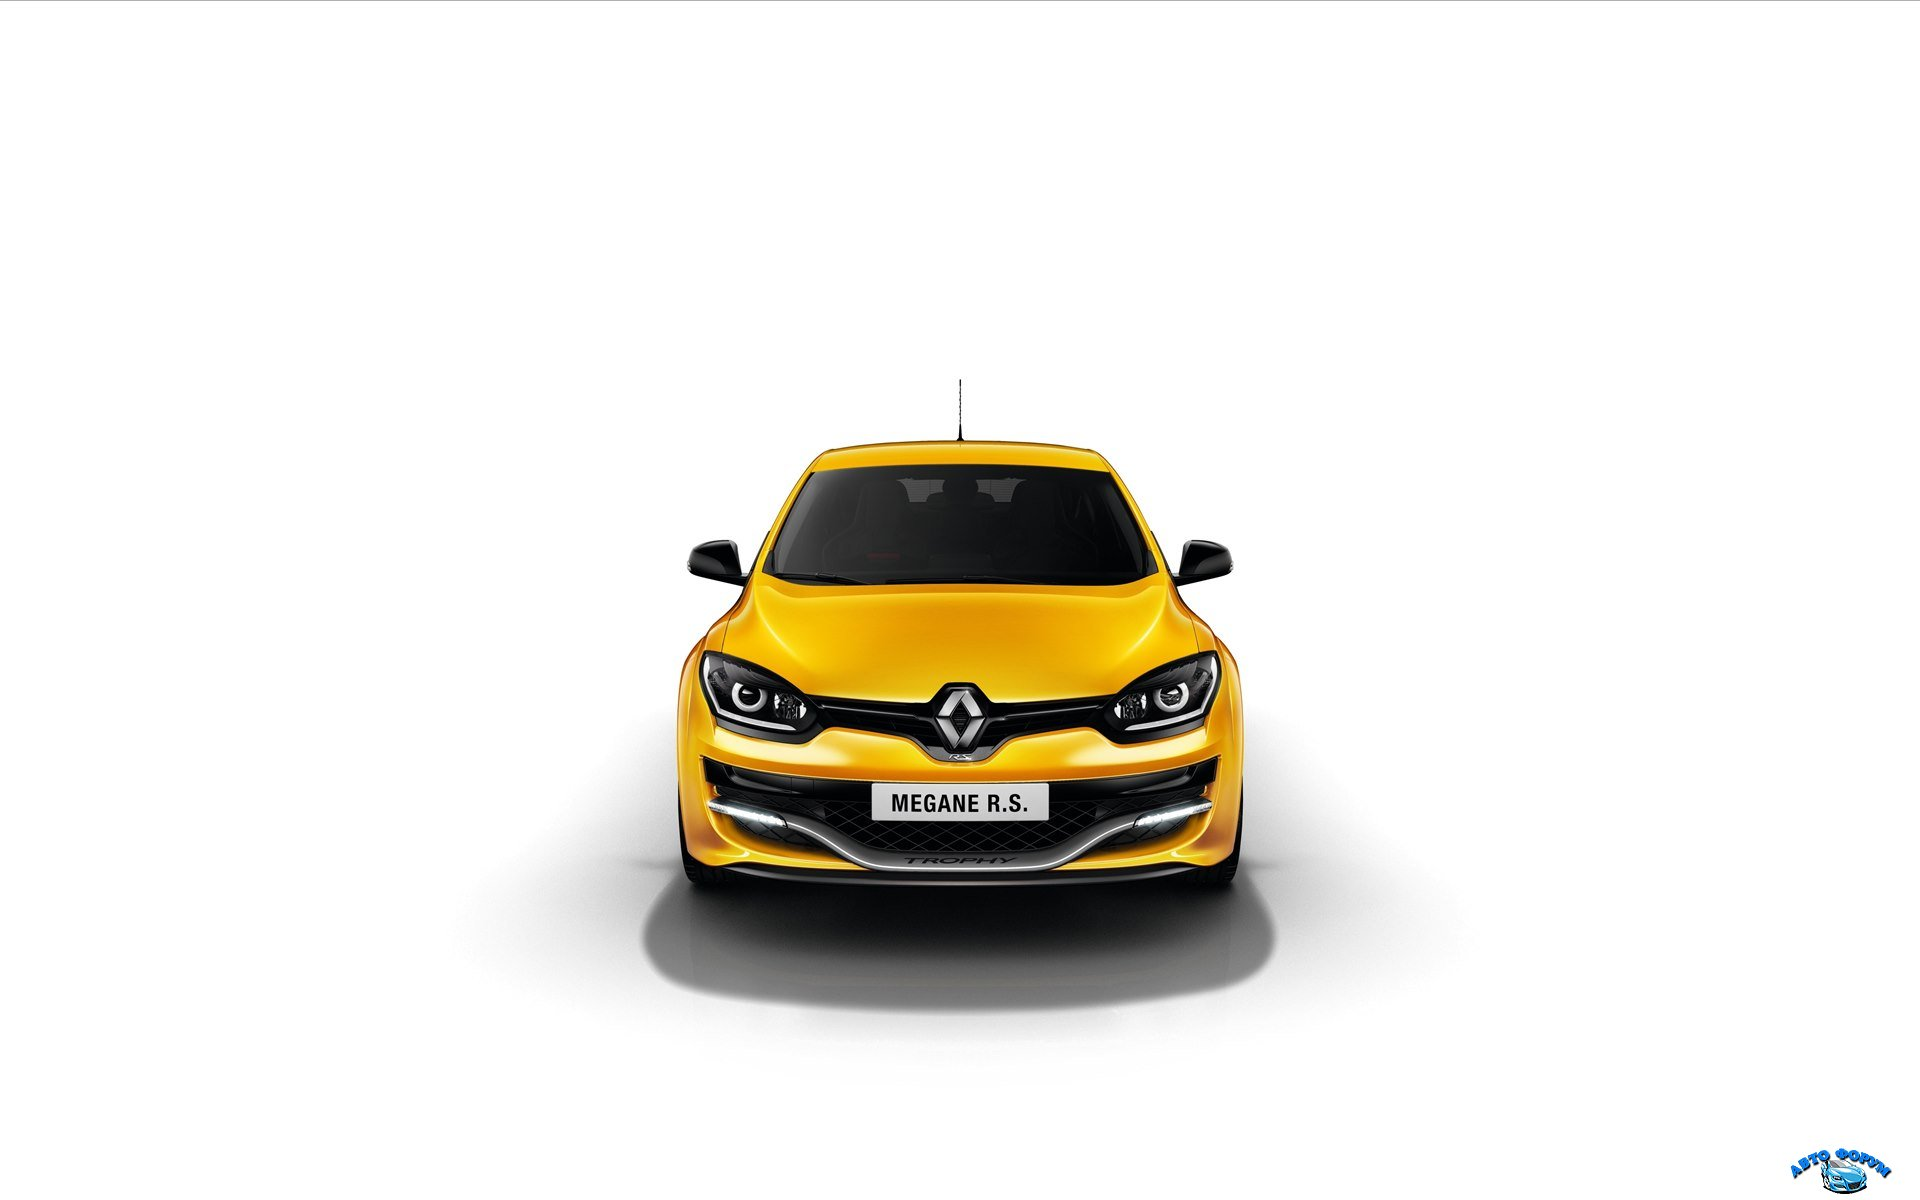 Renault-Megane-RS-275-Trophy-2014-widescreen-01.jpg